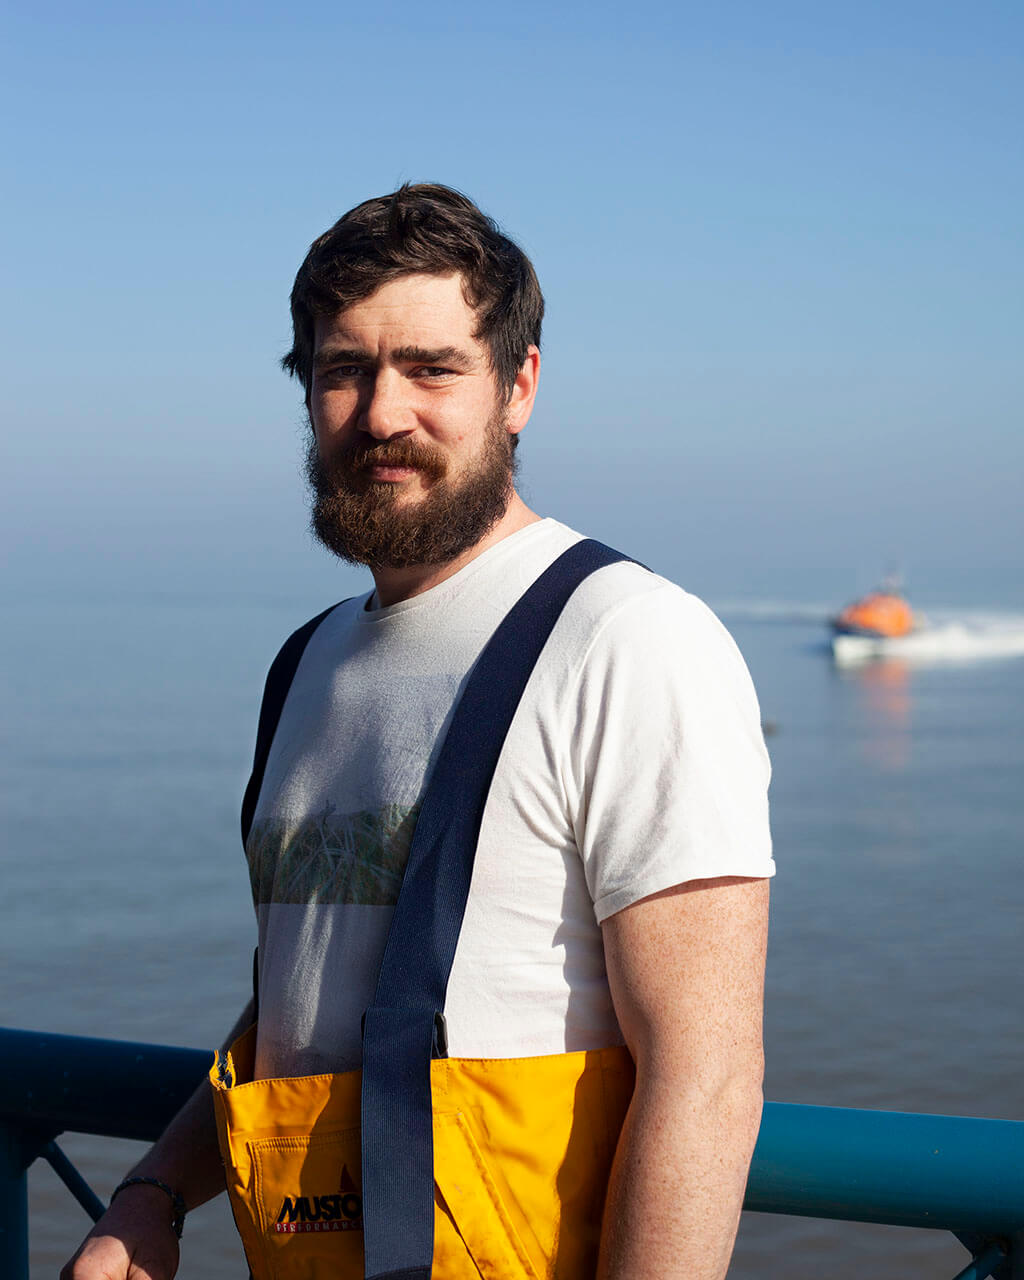 Kate Wolstenholme littoral the south west collective of photography portrait of man rnli